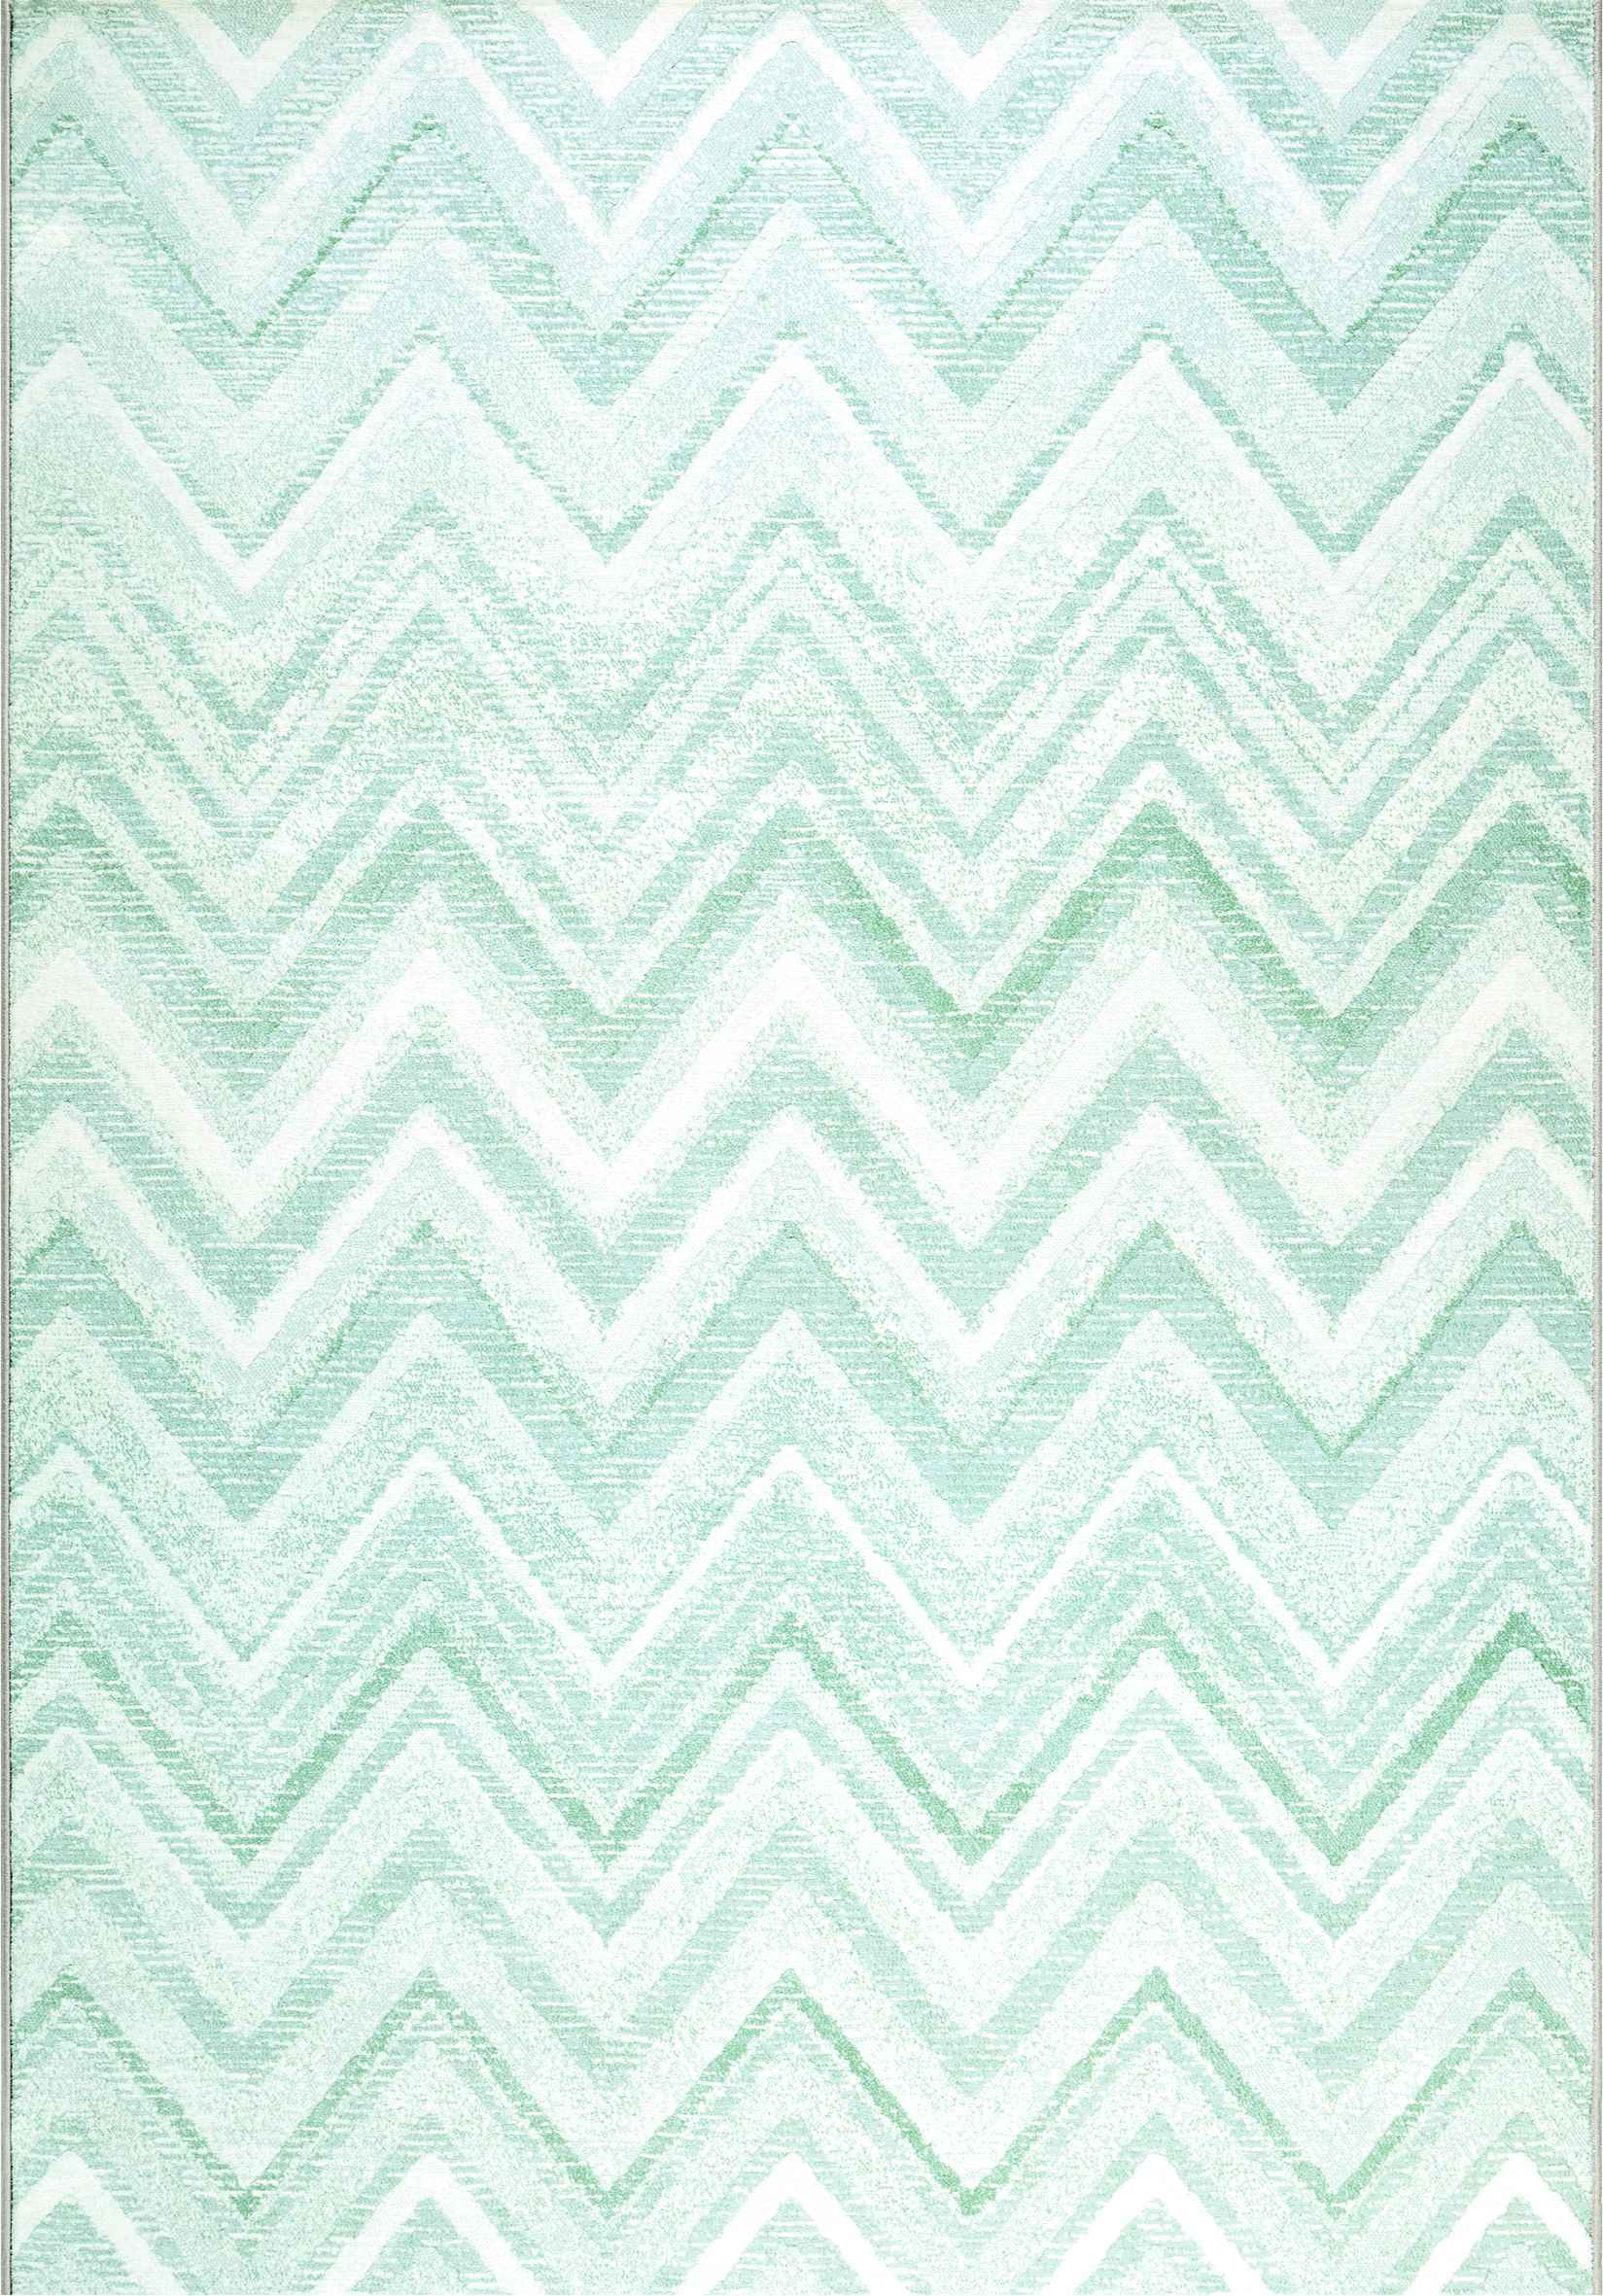 Dynamic Rugs Mysterio Geometric Green 12136 Area Rug